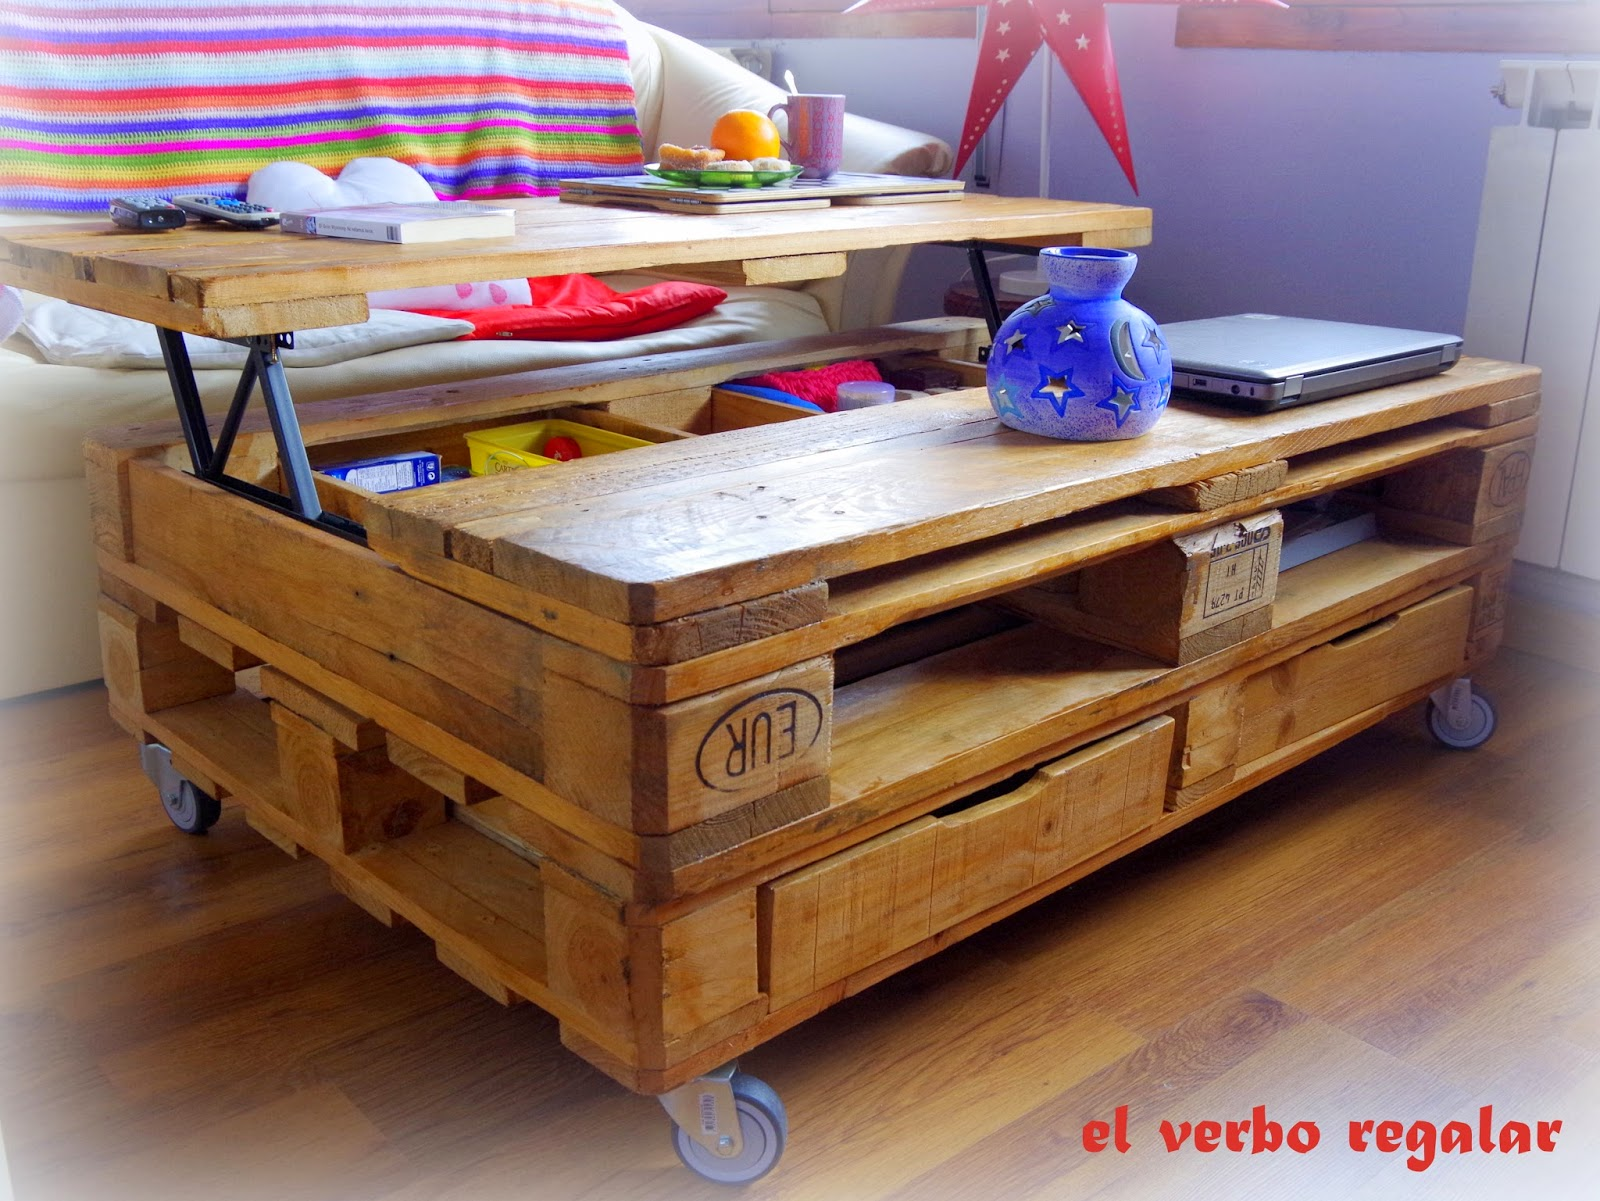 El verbo regalar mesa elevable con palets ideas diy caseras for Mesas de palets fotos